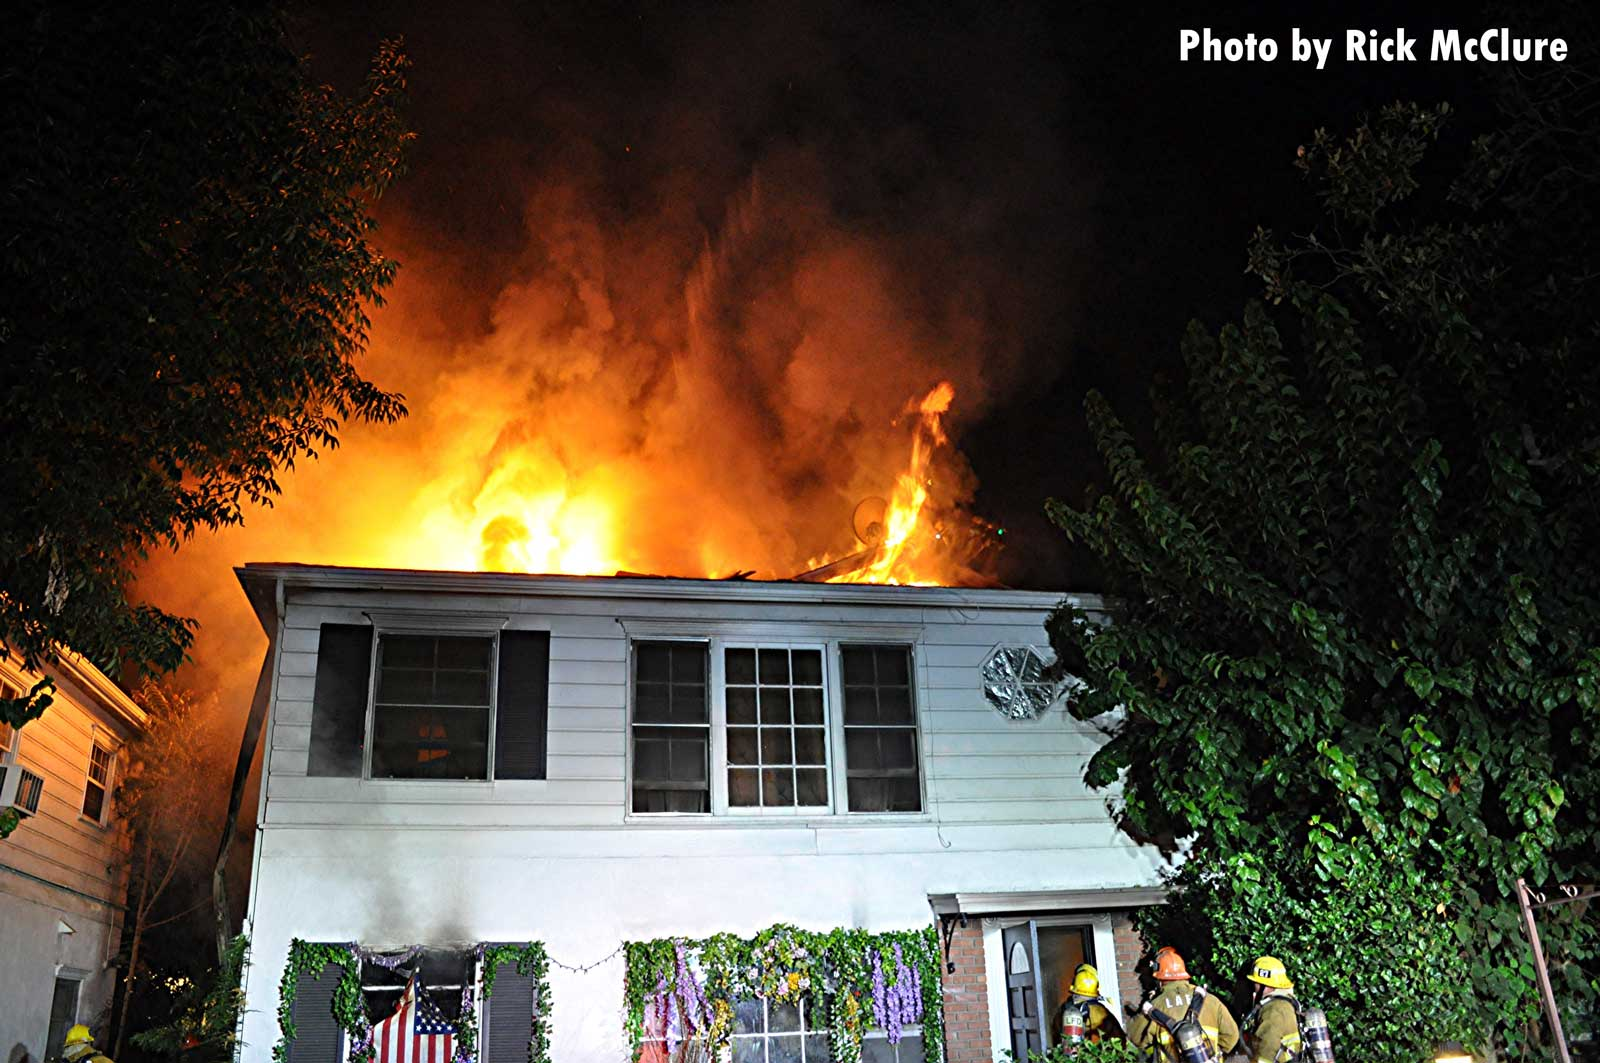 Flames rip through the roof of the residential structure